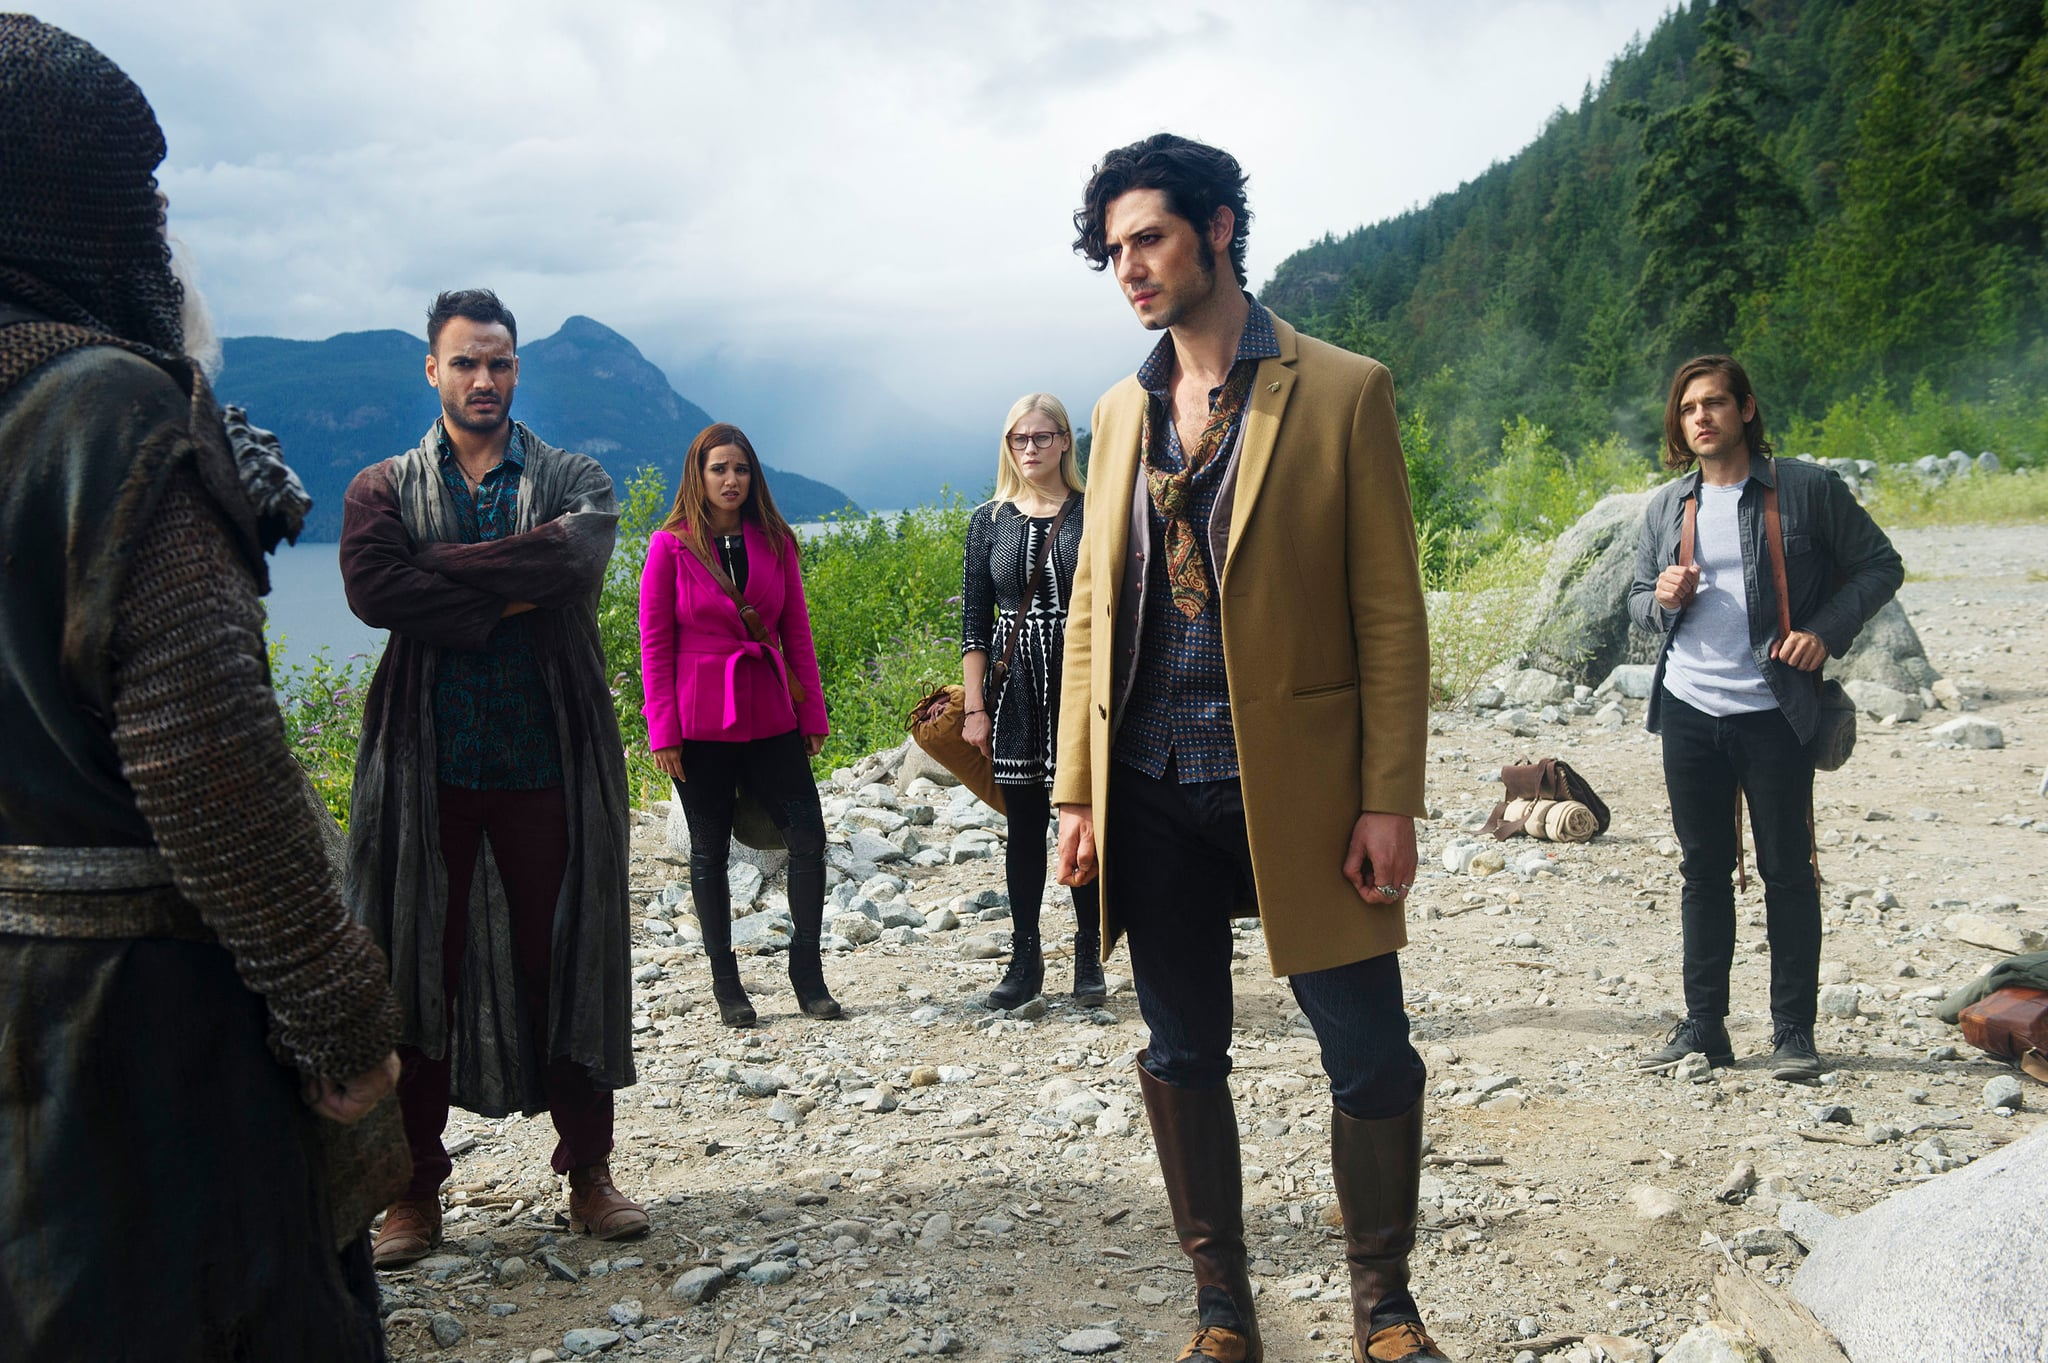 THE MAGICIANS, (from left): Arjun Gupta, Summer Bishil, Olivia Taylor Dudley, Hale Appleman, Jason Ralph, 'Knight of Crowns', (Season 2, ep. 201, aired Jan. 25, 2017). photo: Carole Segal / Syfy / Courtesy: Everett Collection